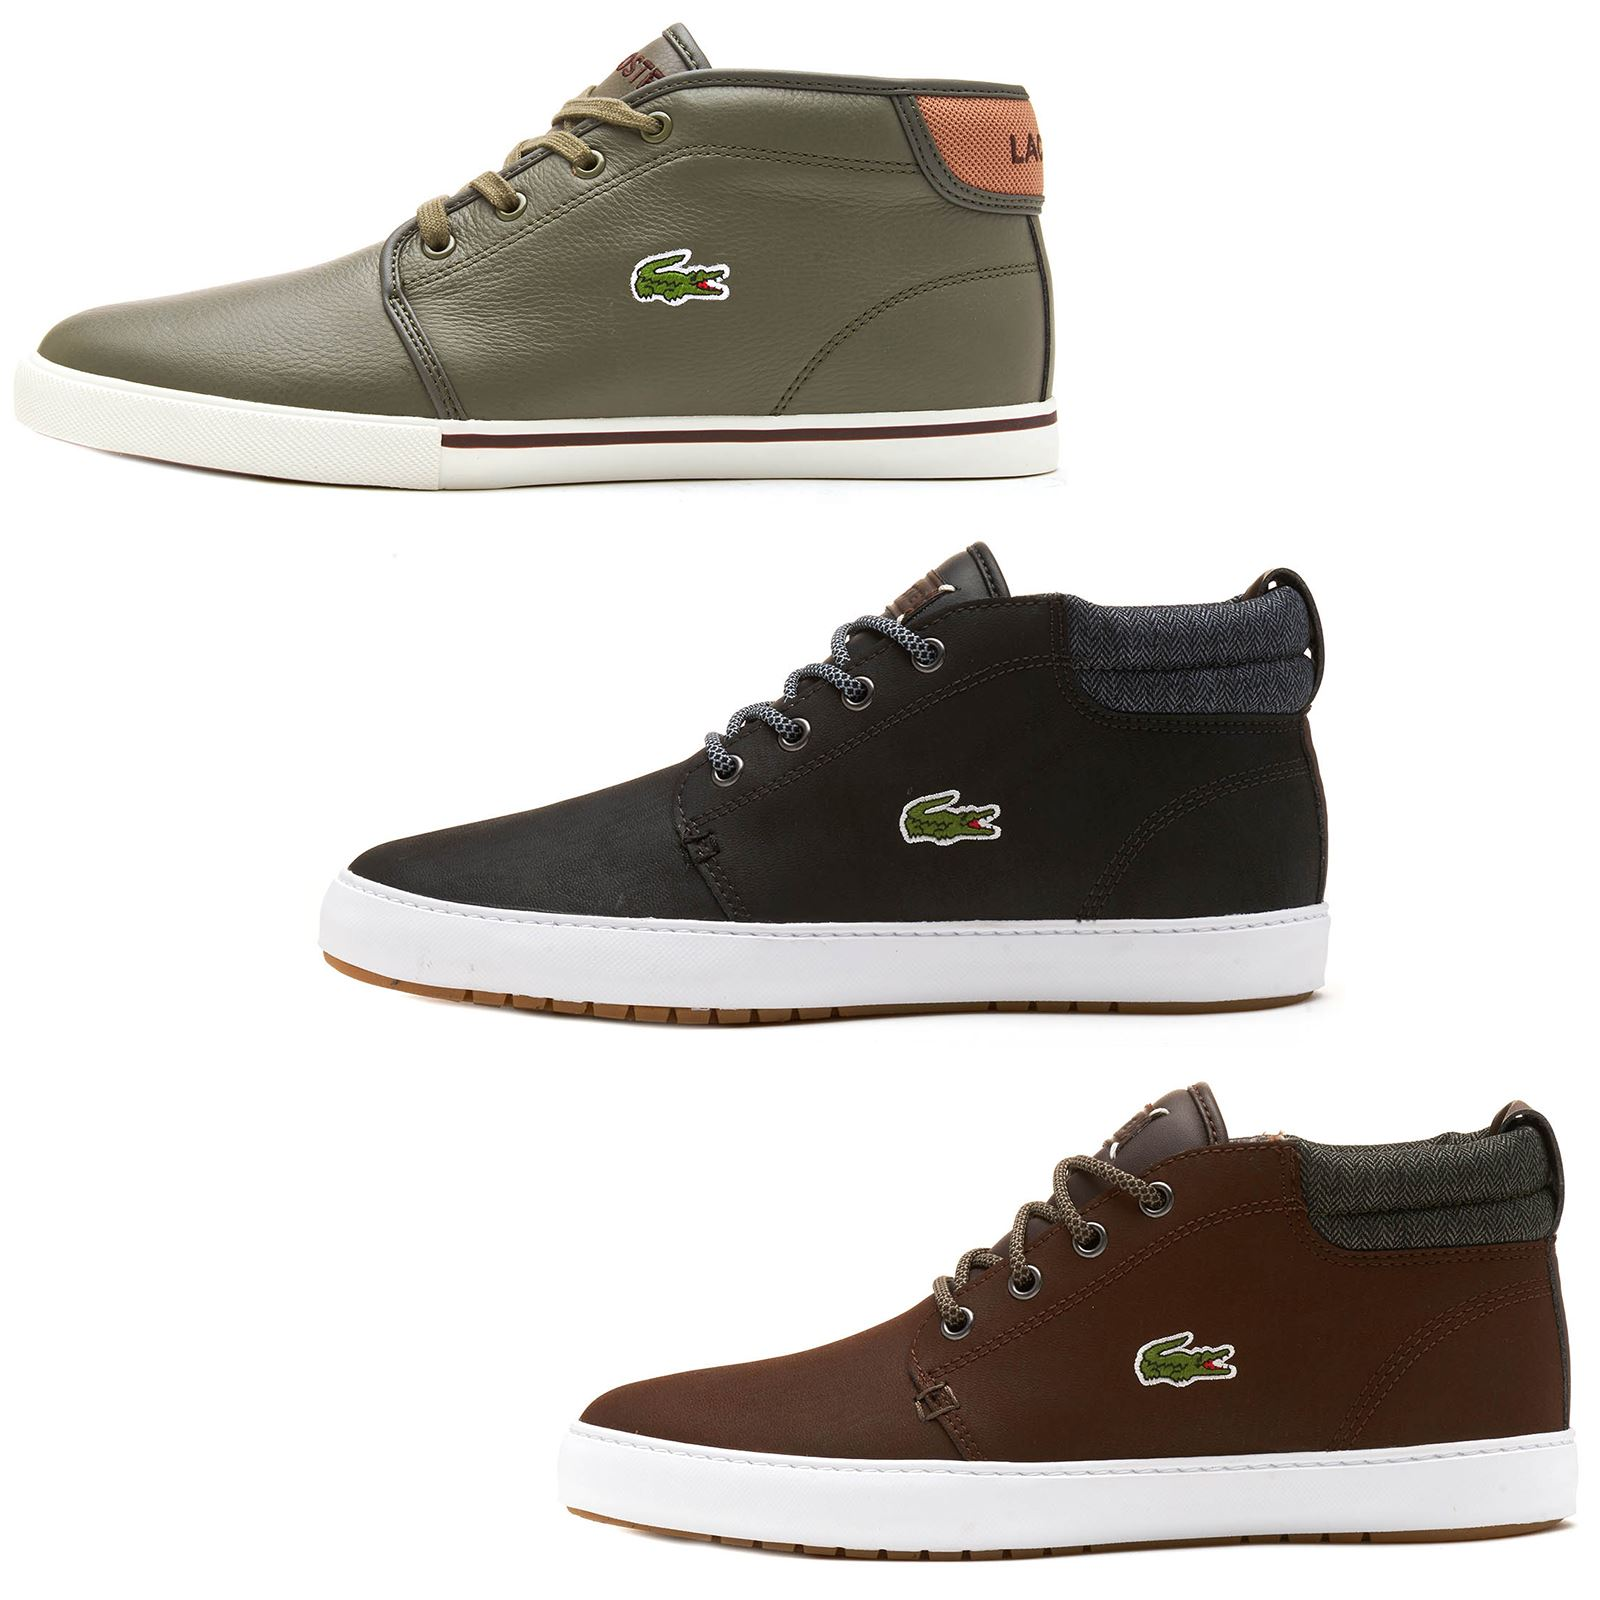 cd23a2906 Details about Lacoste Ampthil Terra CAM Leather High Top Trainers in Black